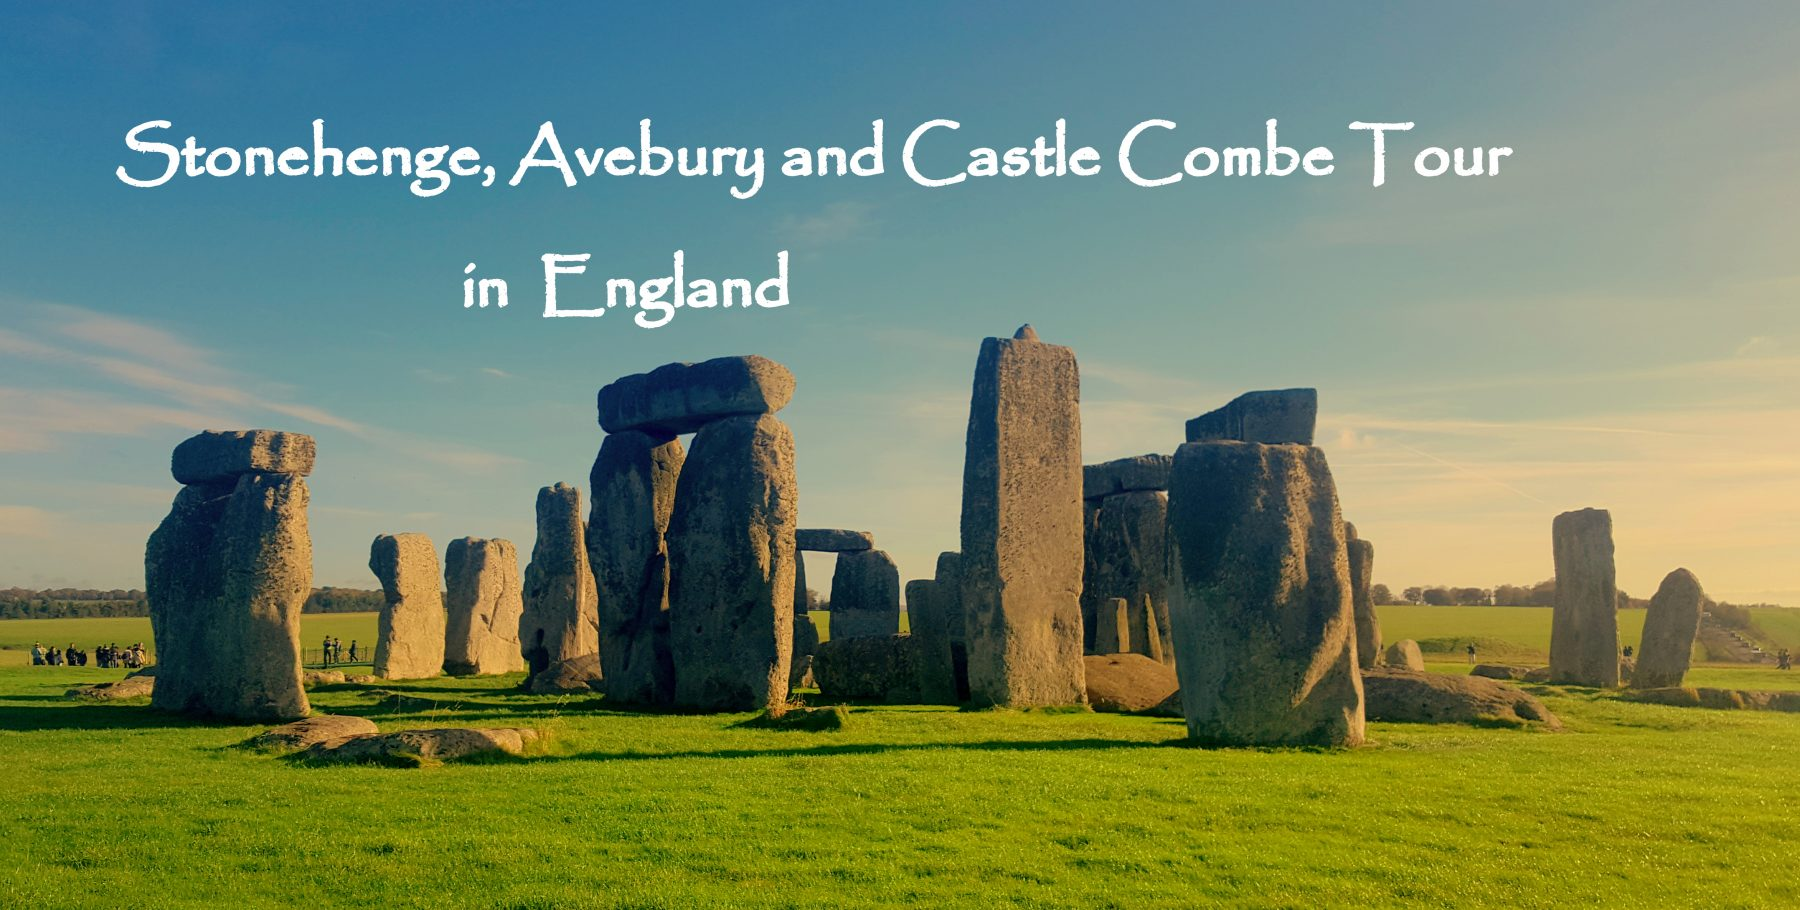 Stonehenge Avebury And Castle Combe Tour In England Travel Moments - Tours of england